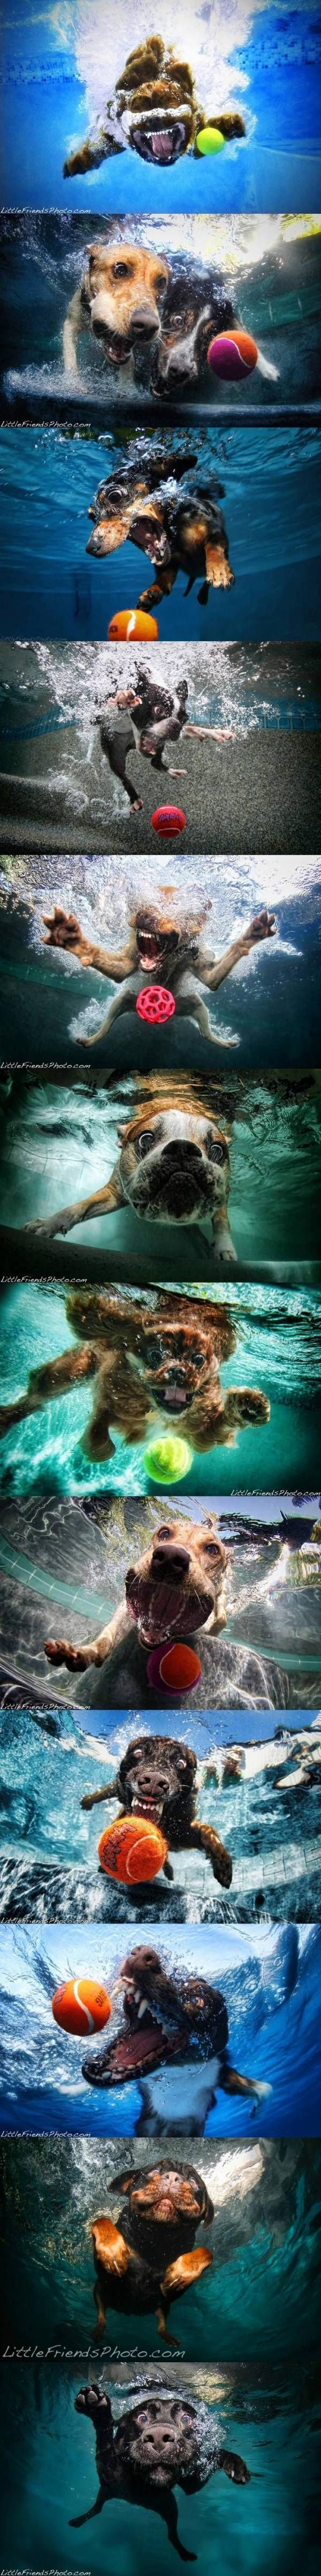 Underwater Dogs by Little Friends Photos. Love this photog!